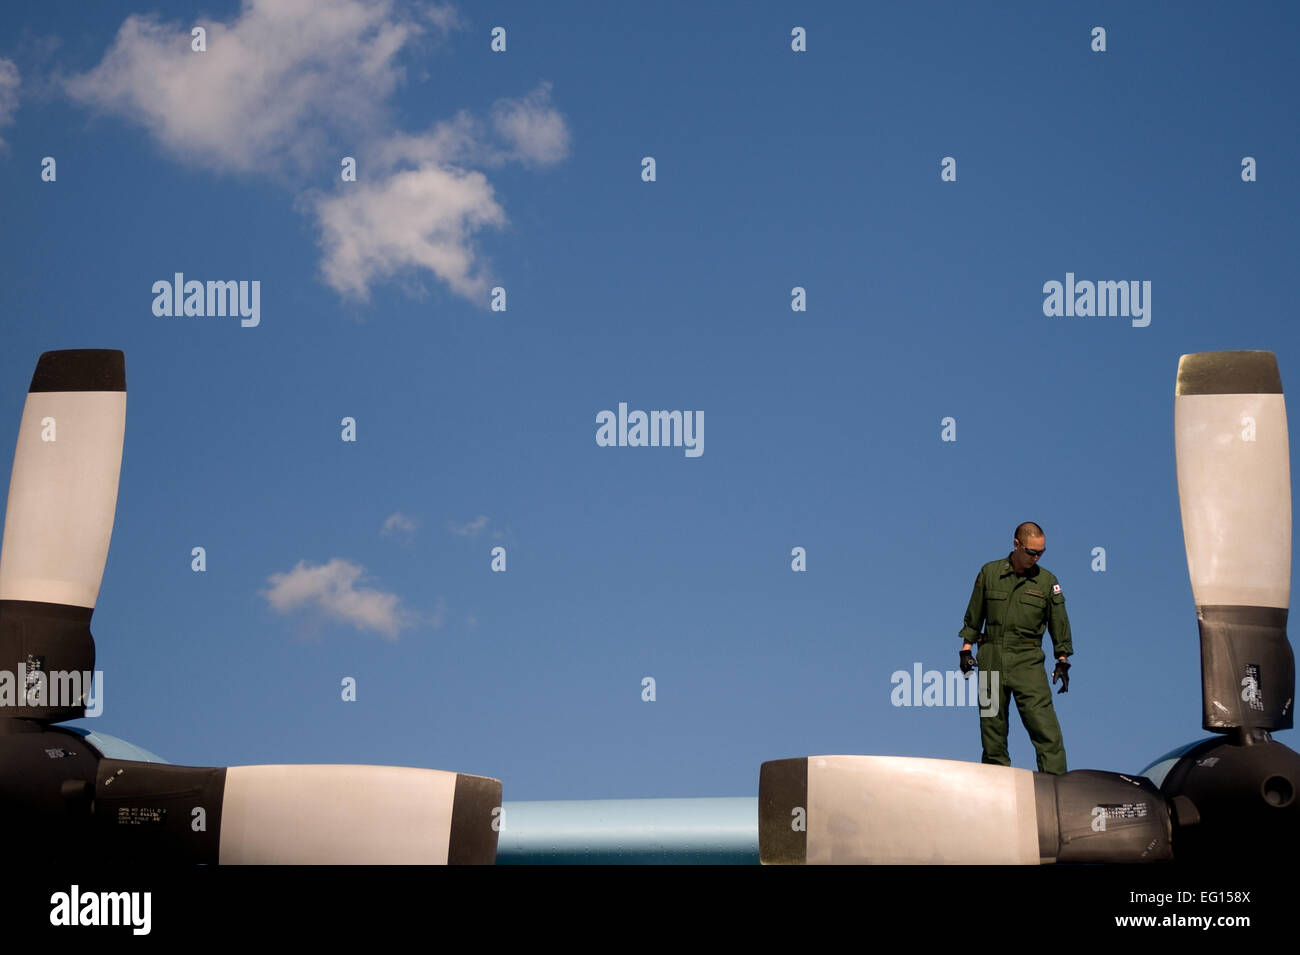 A C-130 aircrew member from the 1st Tactical Airlift Wing, 401st Squadron, Japanese Air Self Defense Force performs Stock Photo